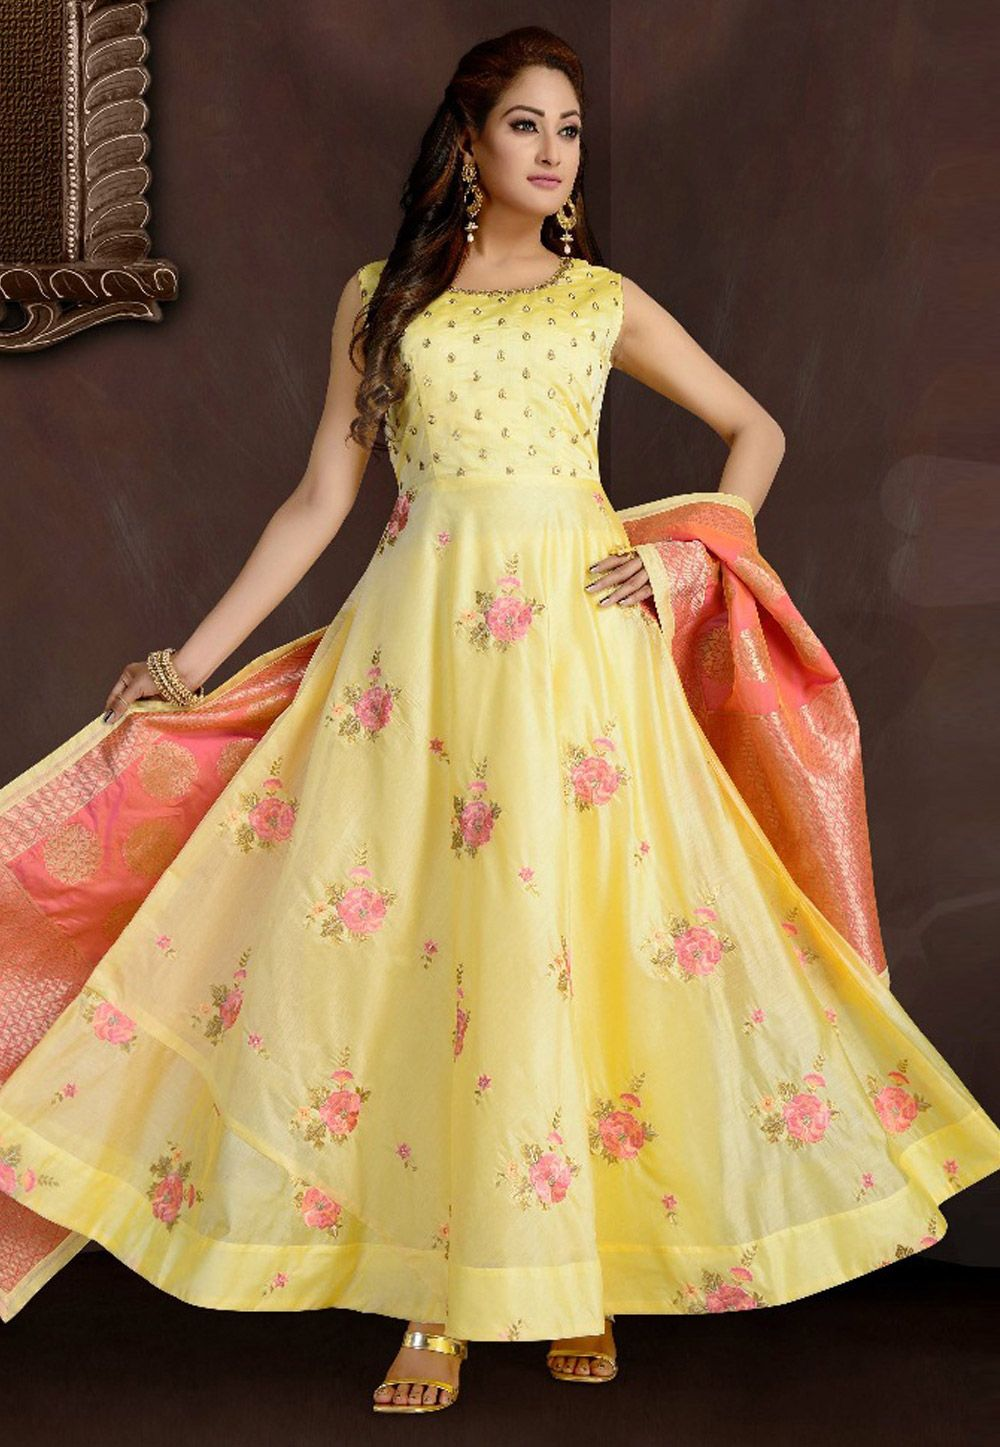 3f32fb4d547 Buy Light Yellow Chanderi Readymade Ankle Length Anarkali Suit 162457 online  at lowest price from huge collection of salwar kameez at  Indianclothstore.com.